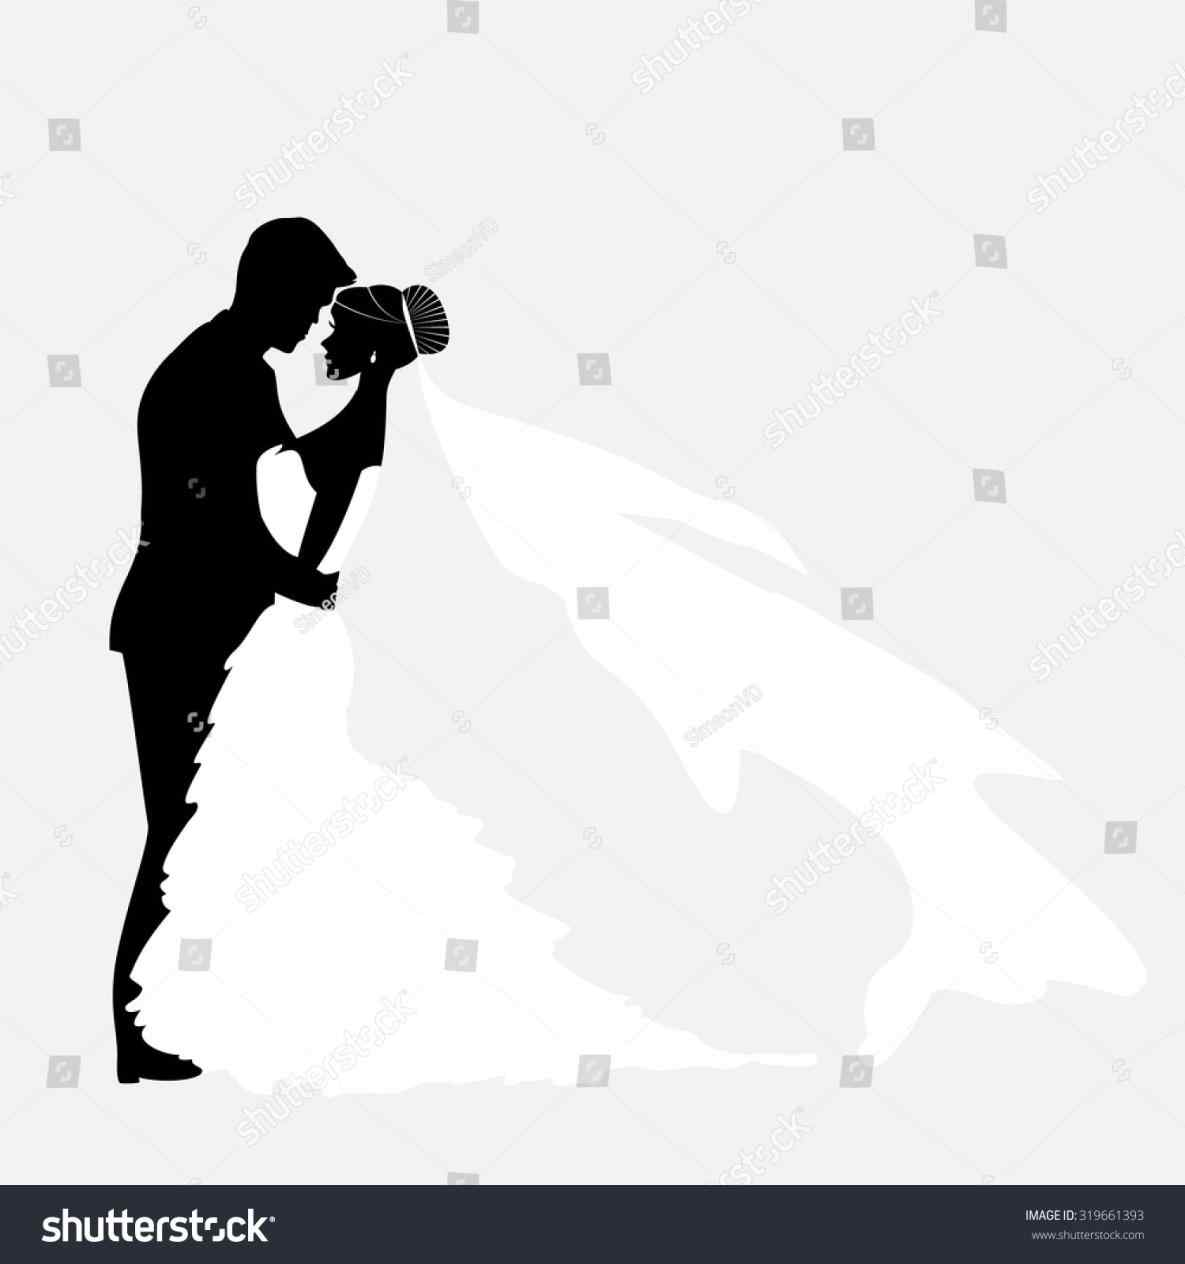 hight resolution of 1185x1264 public s png clip art best web s bride and groom silhouette